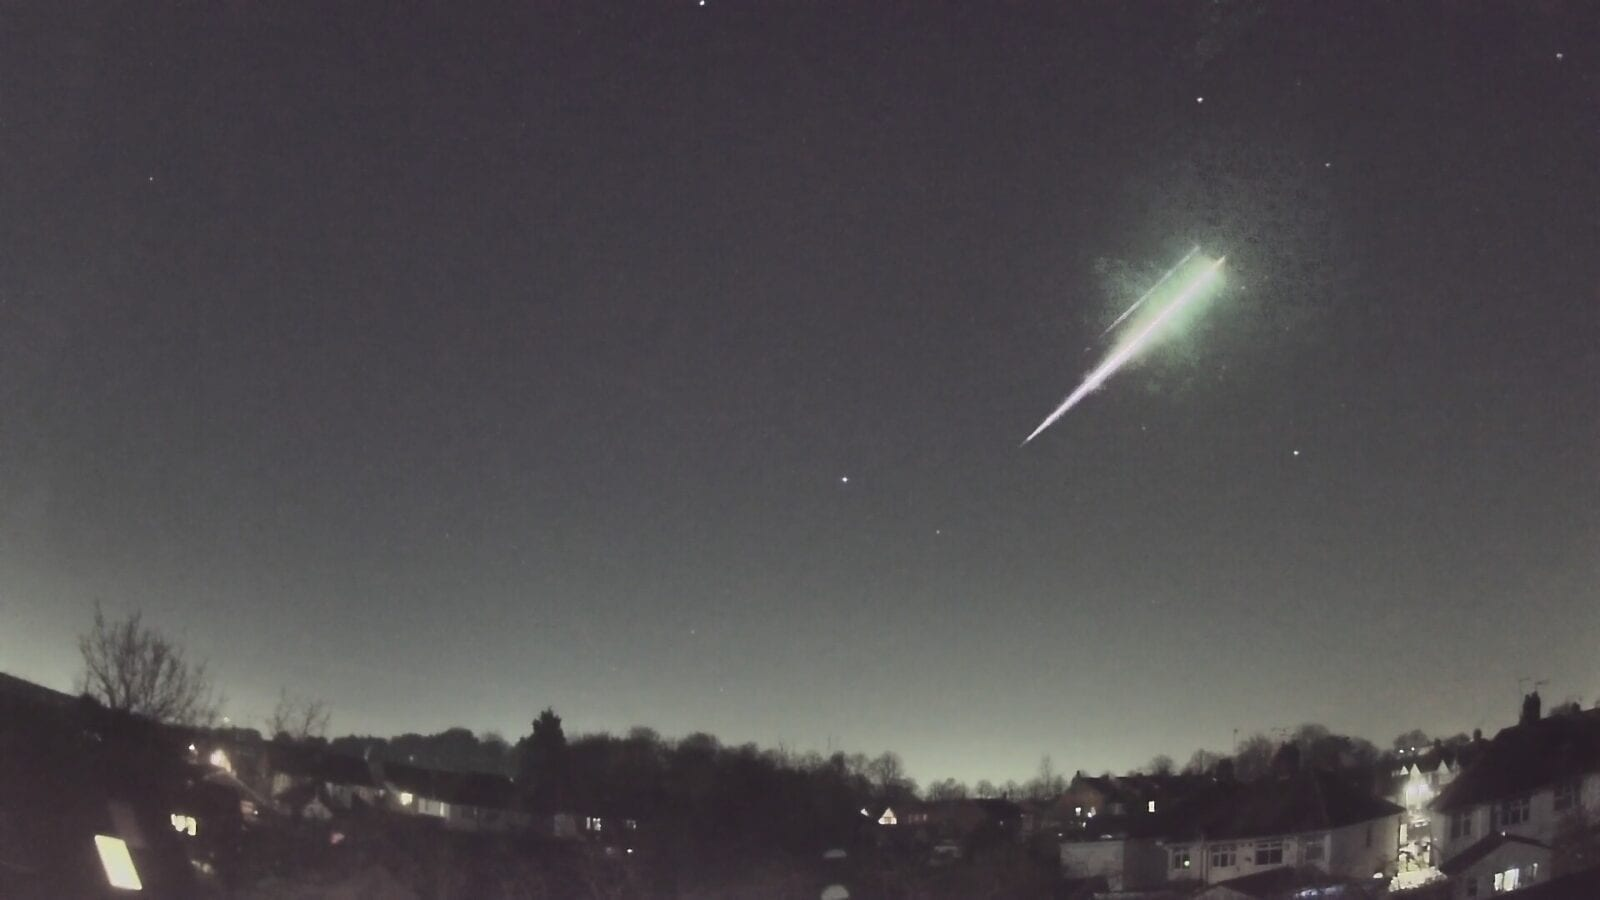 Manchester researchers are helping investigate a rare meteorite recovered after a 'spectacular fireball', The Manc